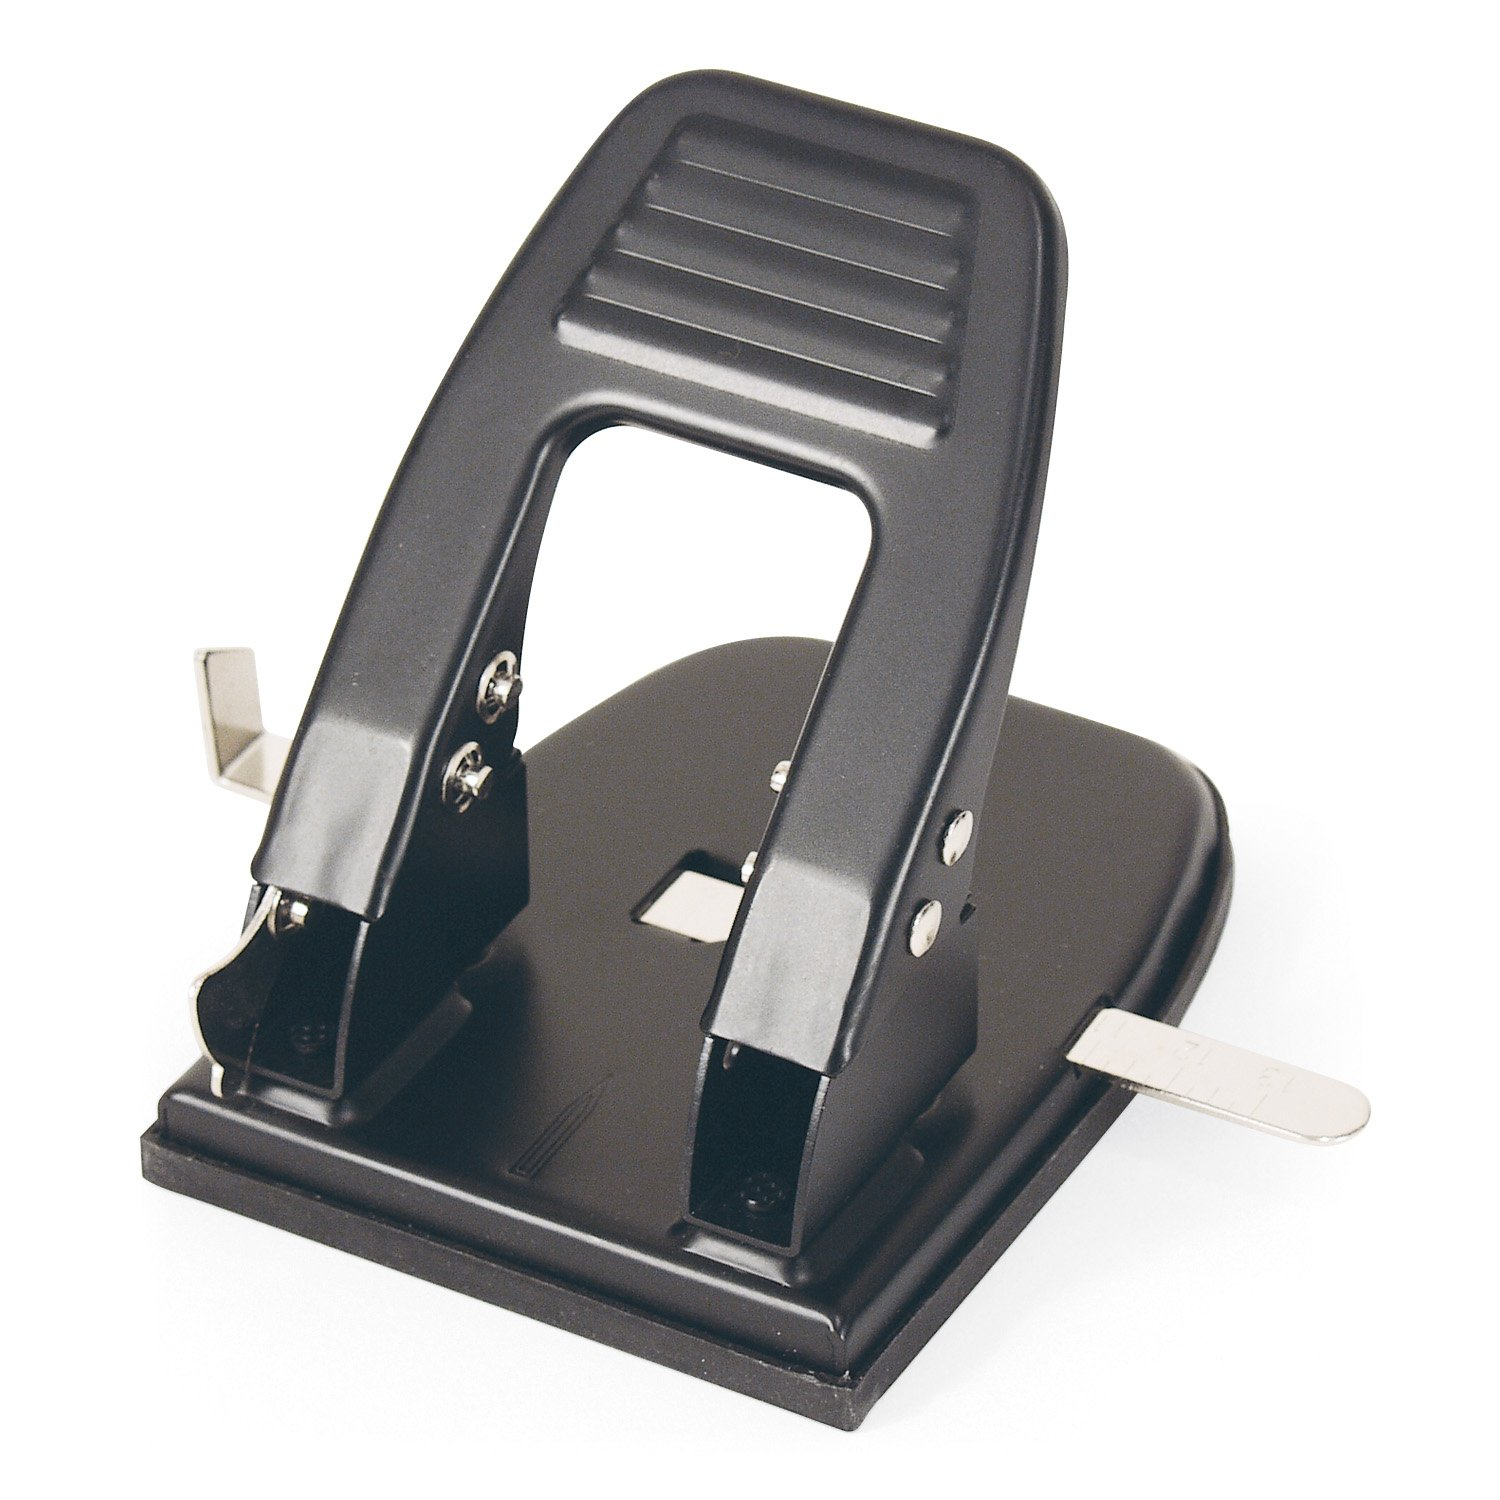 Officemate 2 Hole Punch, 30 Sheet Capacity, Black (90092) Officemate International